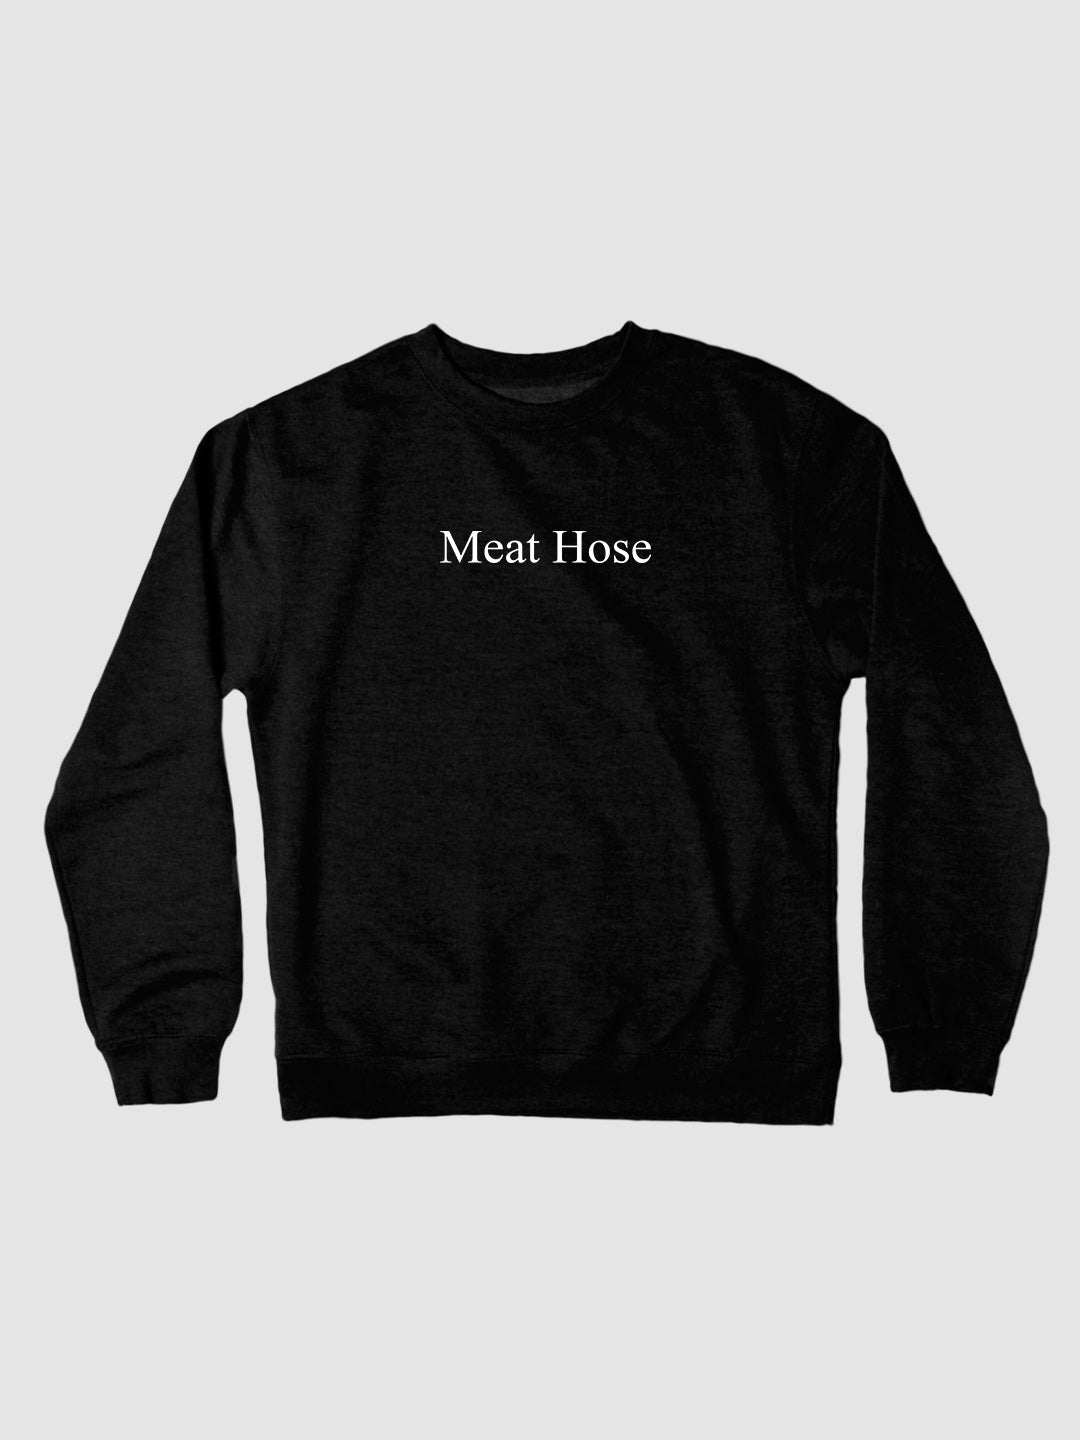 Meat Hose Character Crewneck